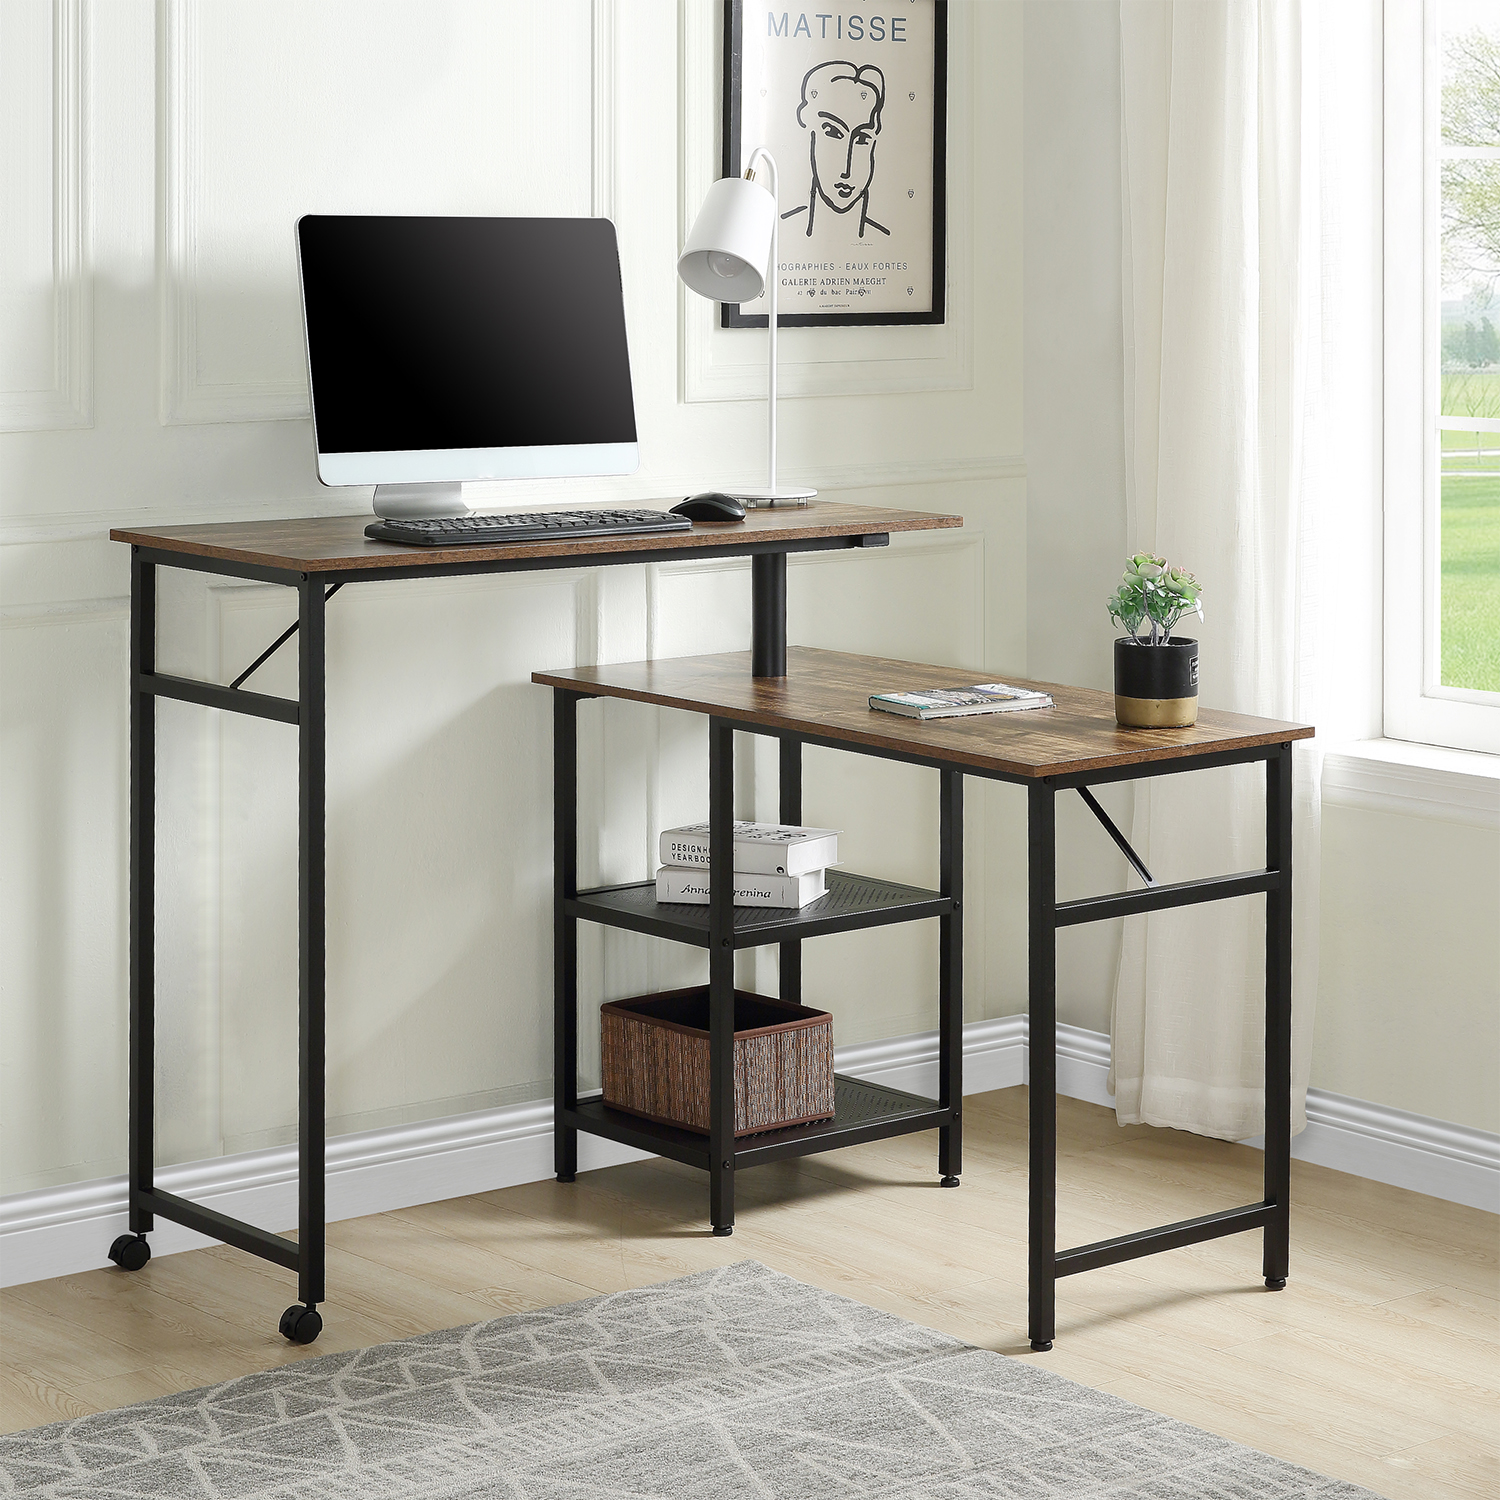 Home Office Furnitures L Shaped Computer Desk Industrial 360 Degres Free Rotating Office Desk Study Table With Storage Shelf Leather Bag